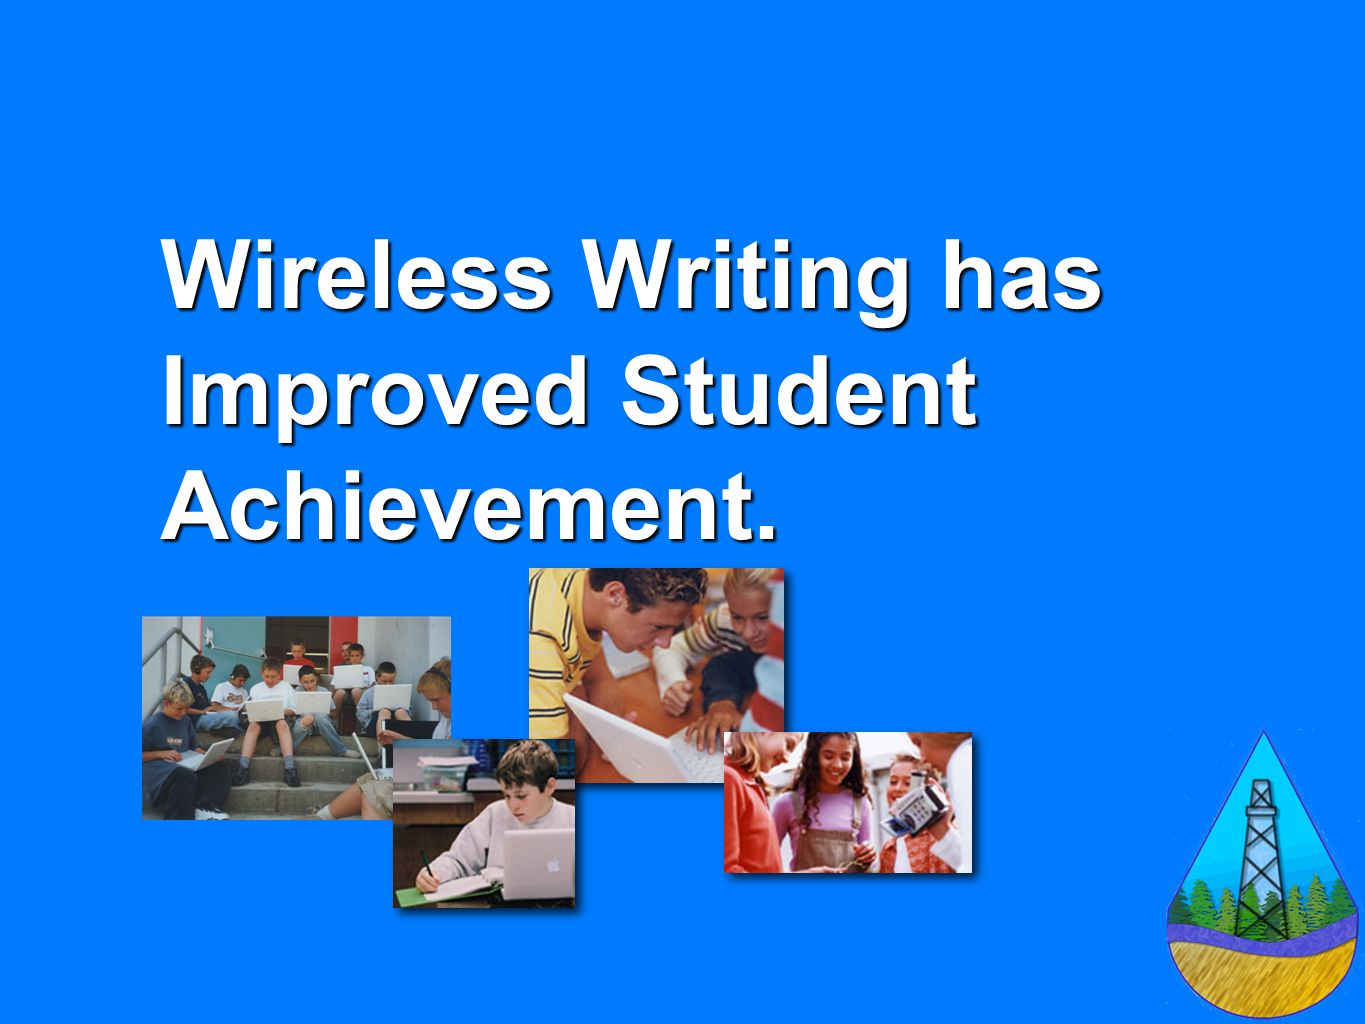 Student Growth In Writing Ministry FSA Grade 7 Number of Students Meeting Expectations